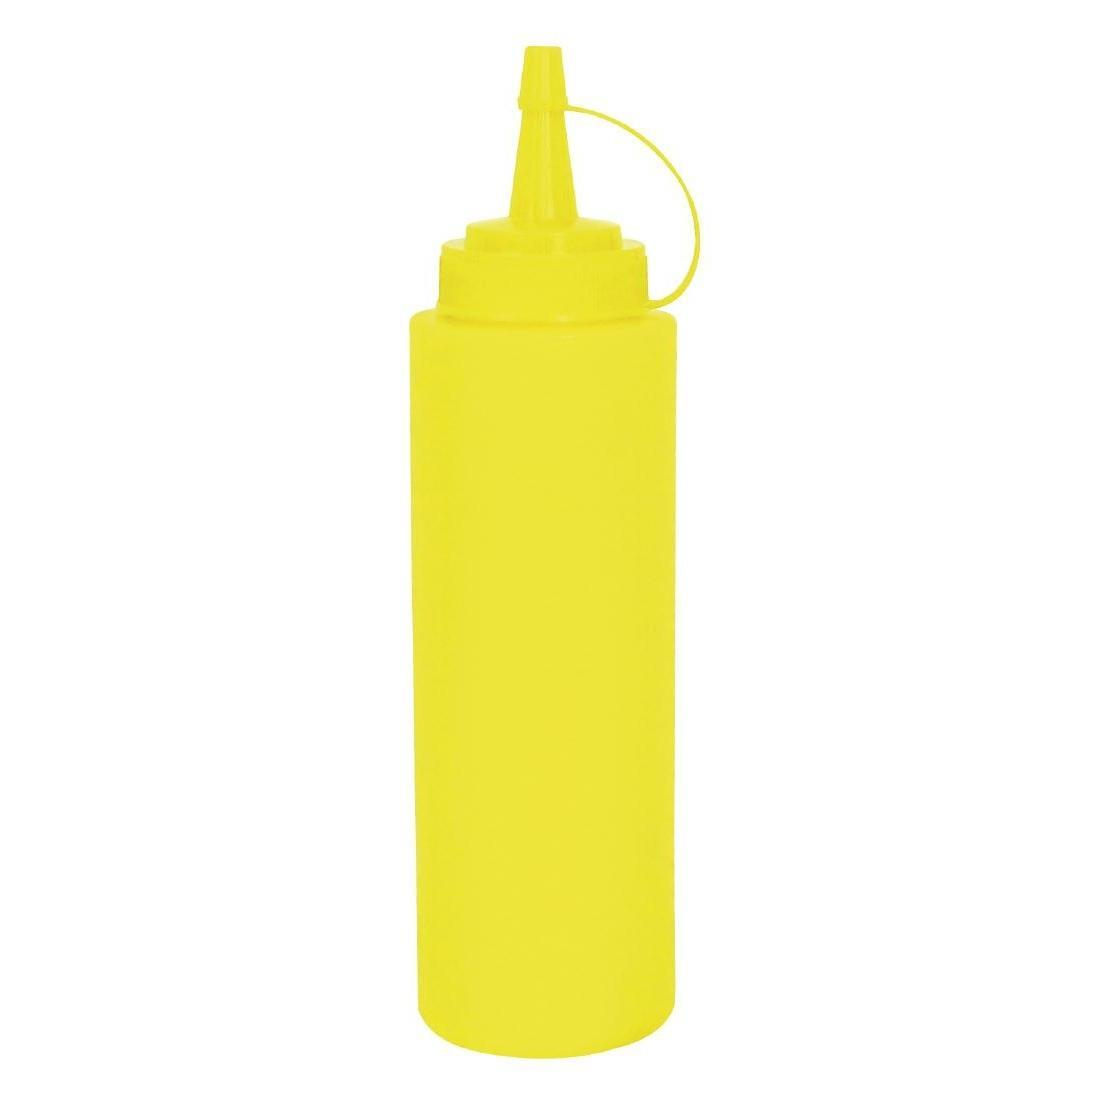 Vogue Yellow Squeeze Sauce Bottle 35oz - W834